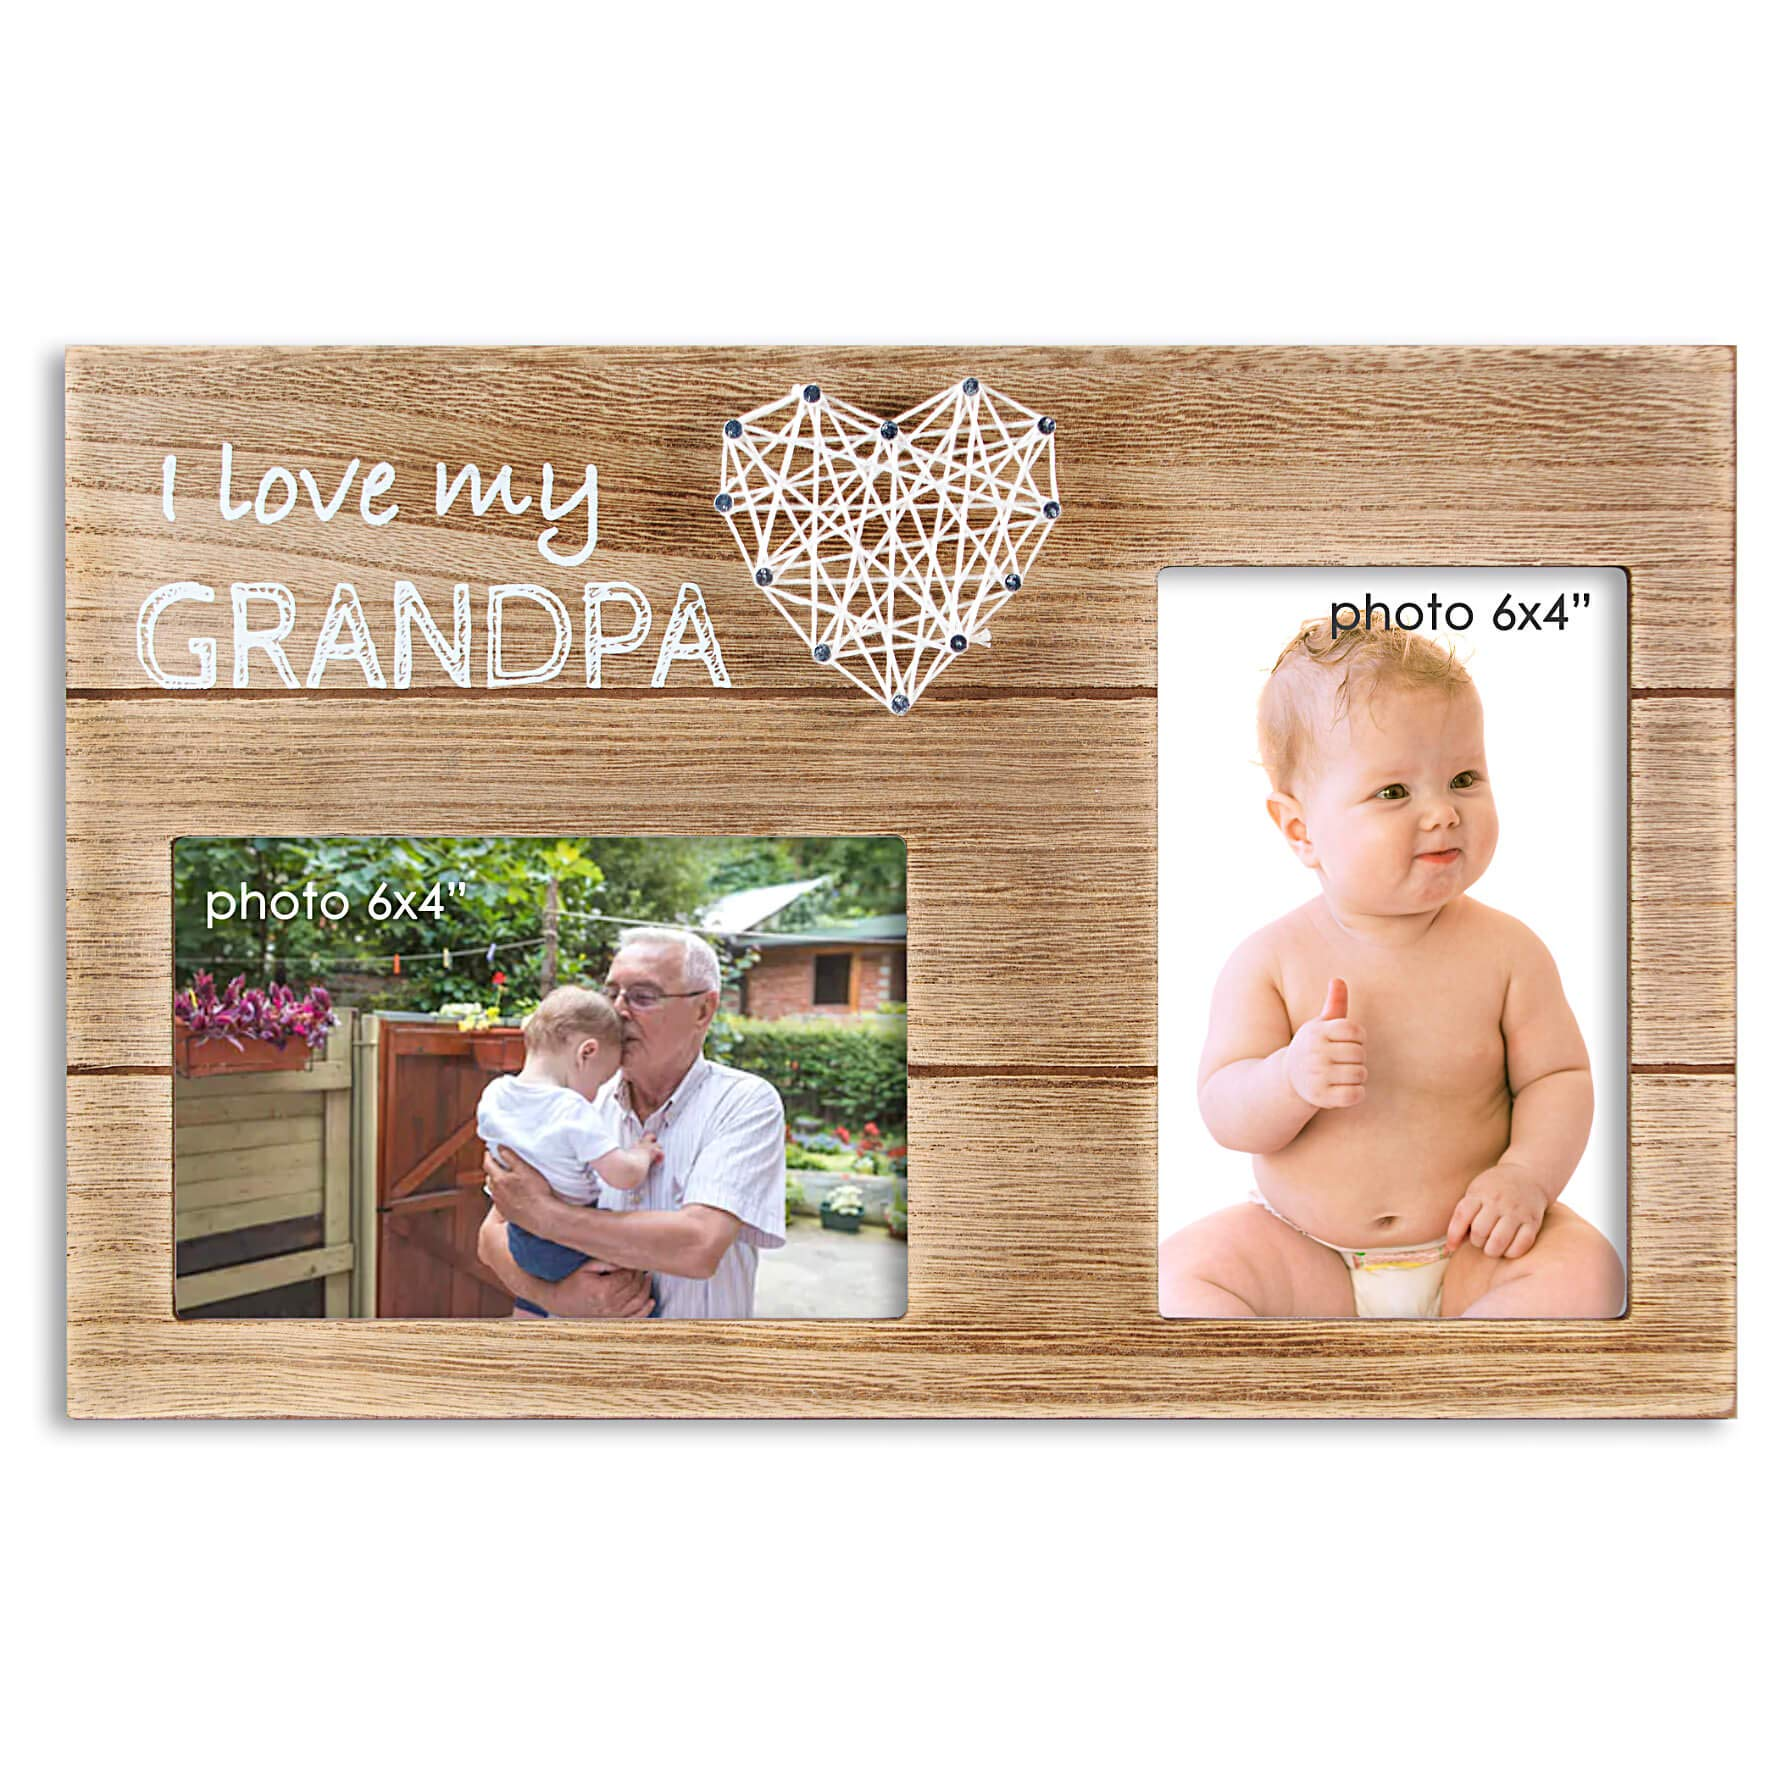 New Grandpa Gifts From Baby Distressed Pearhead Grandma /& Me Keepsake Rustic Picture Frame